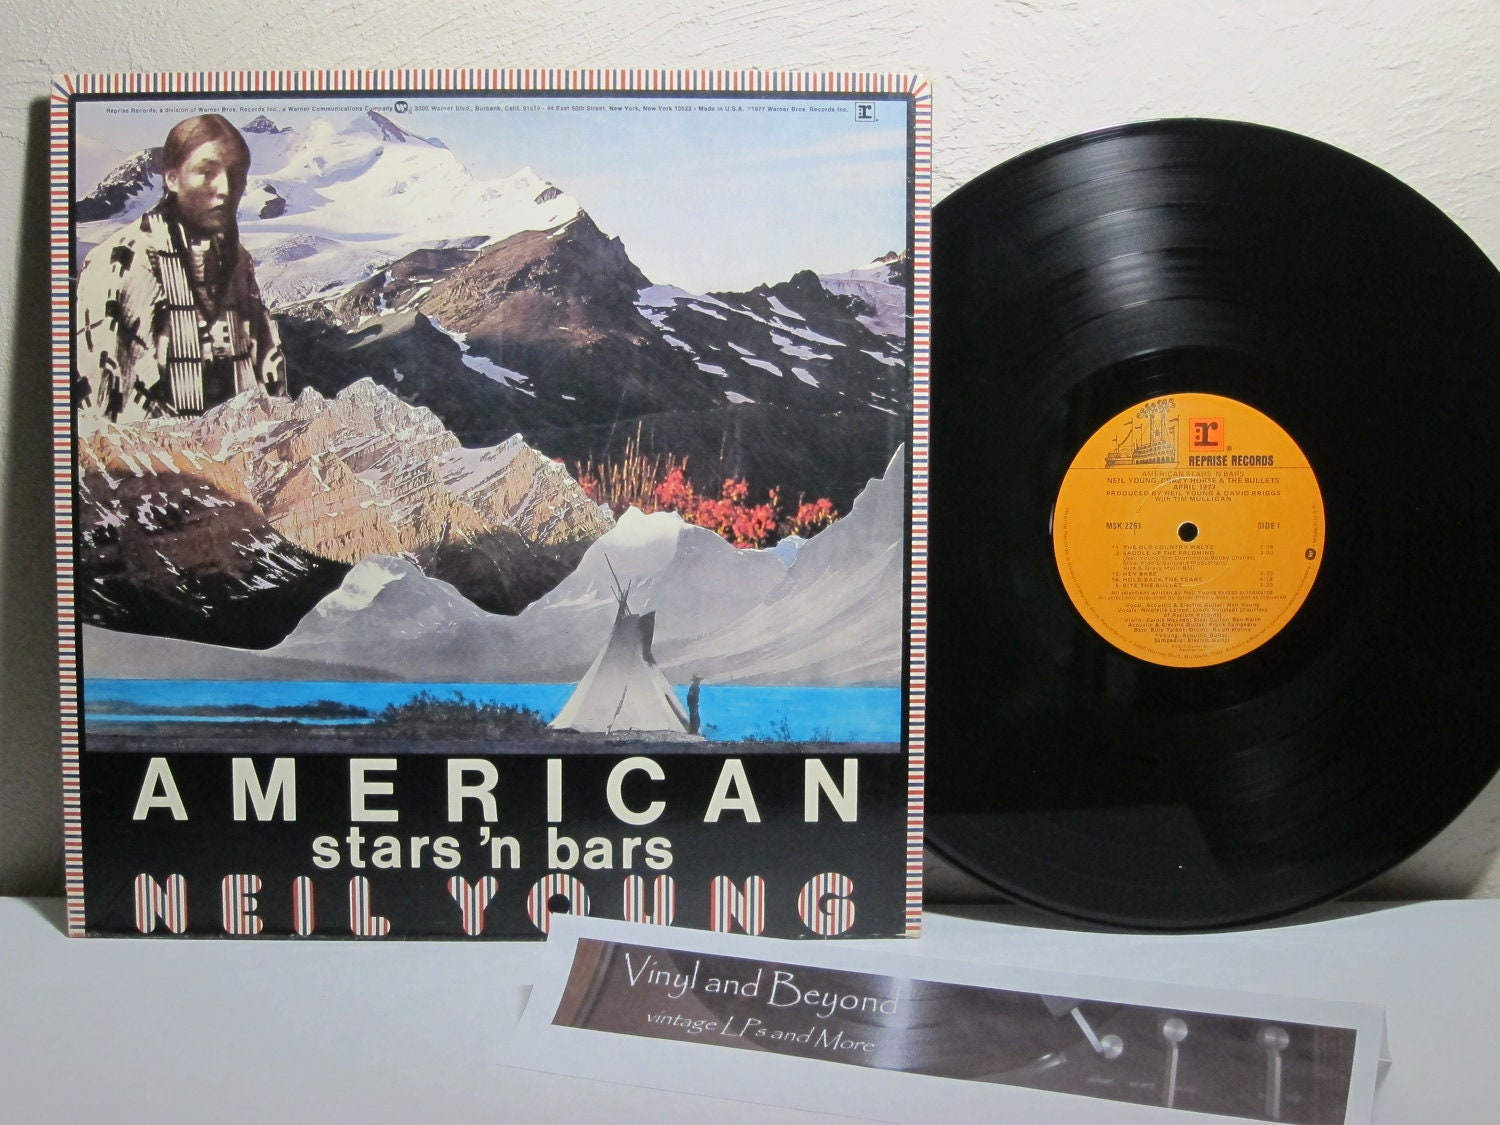 Neil Young American Stars 'n Bars Vinyl LP record